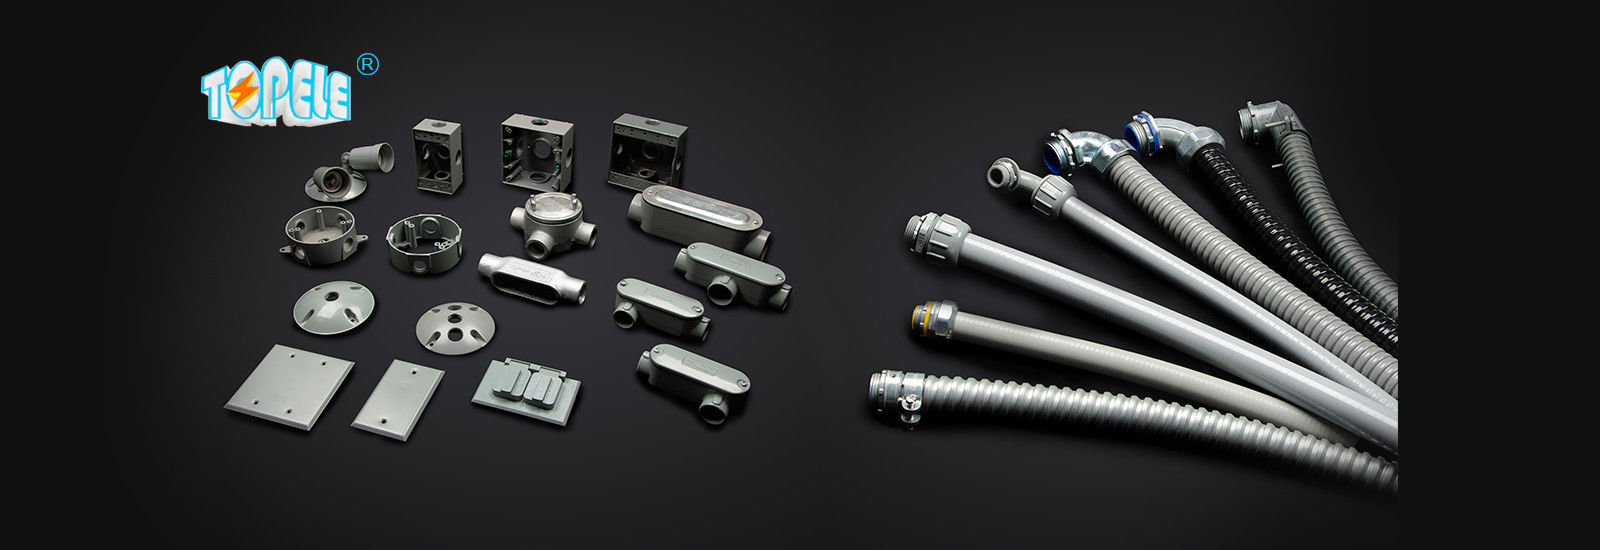 IMC Conduit And Fittings